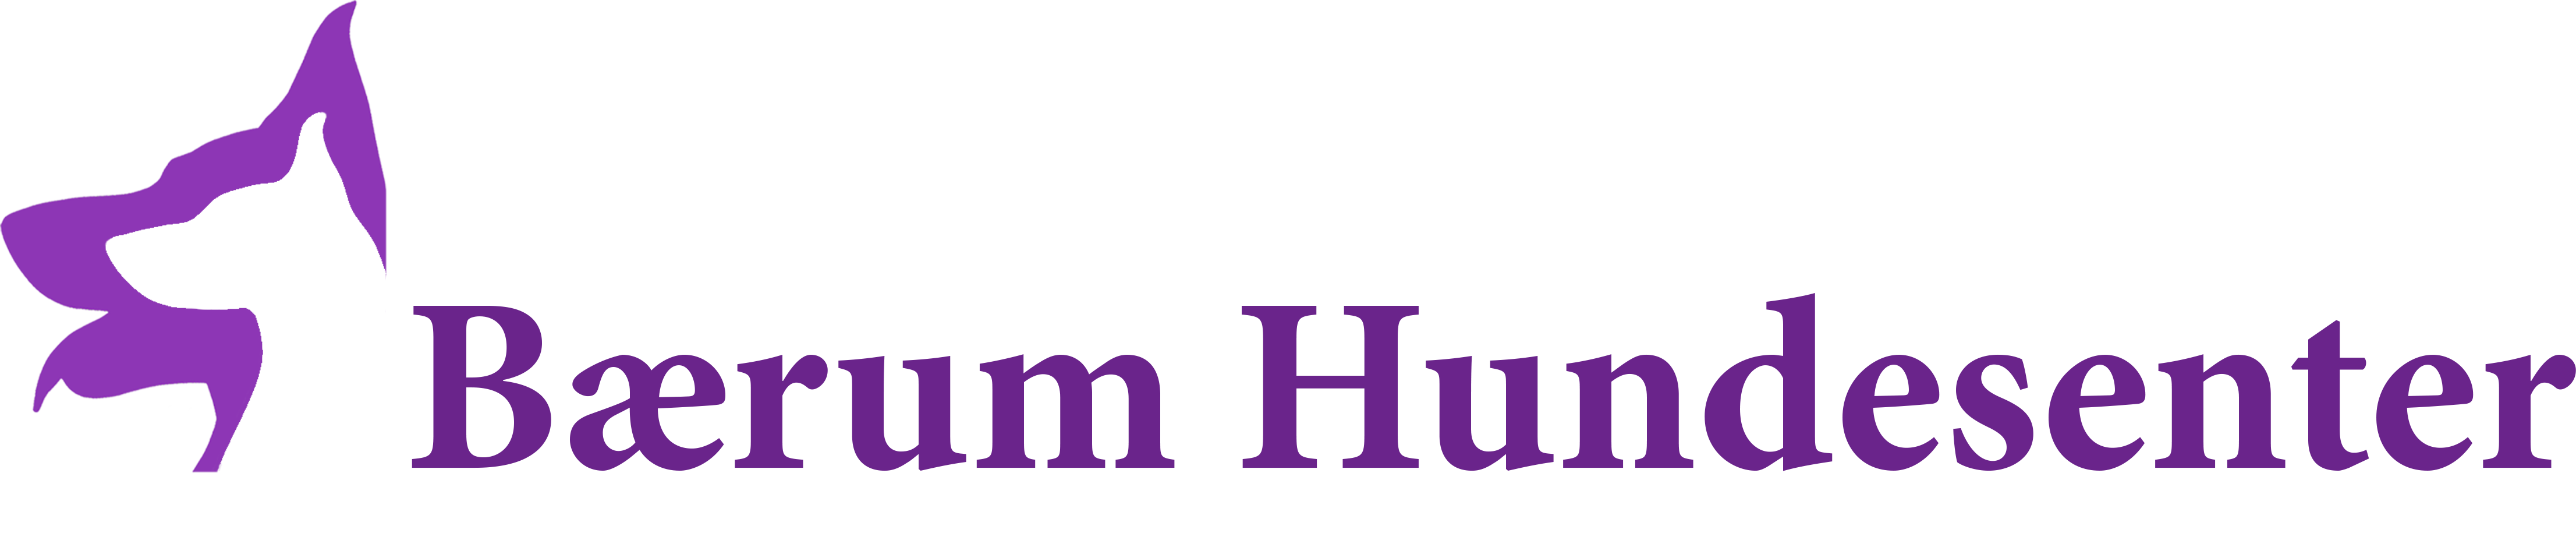 Baerum Hundesenter logo